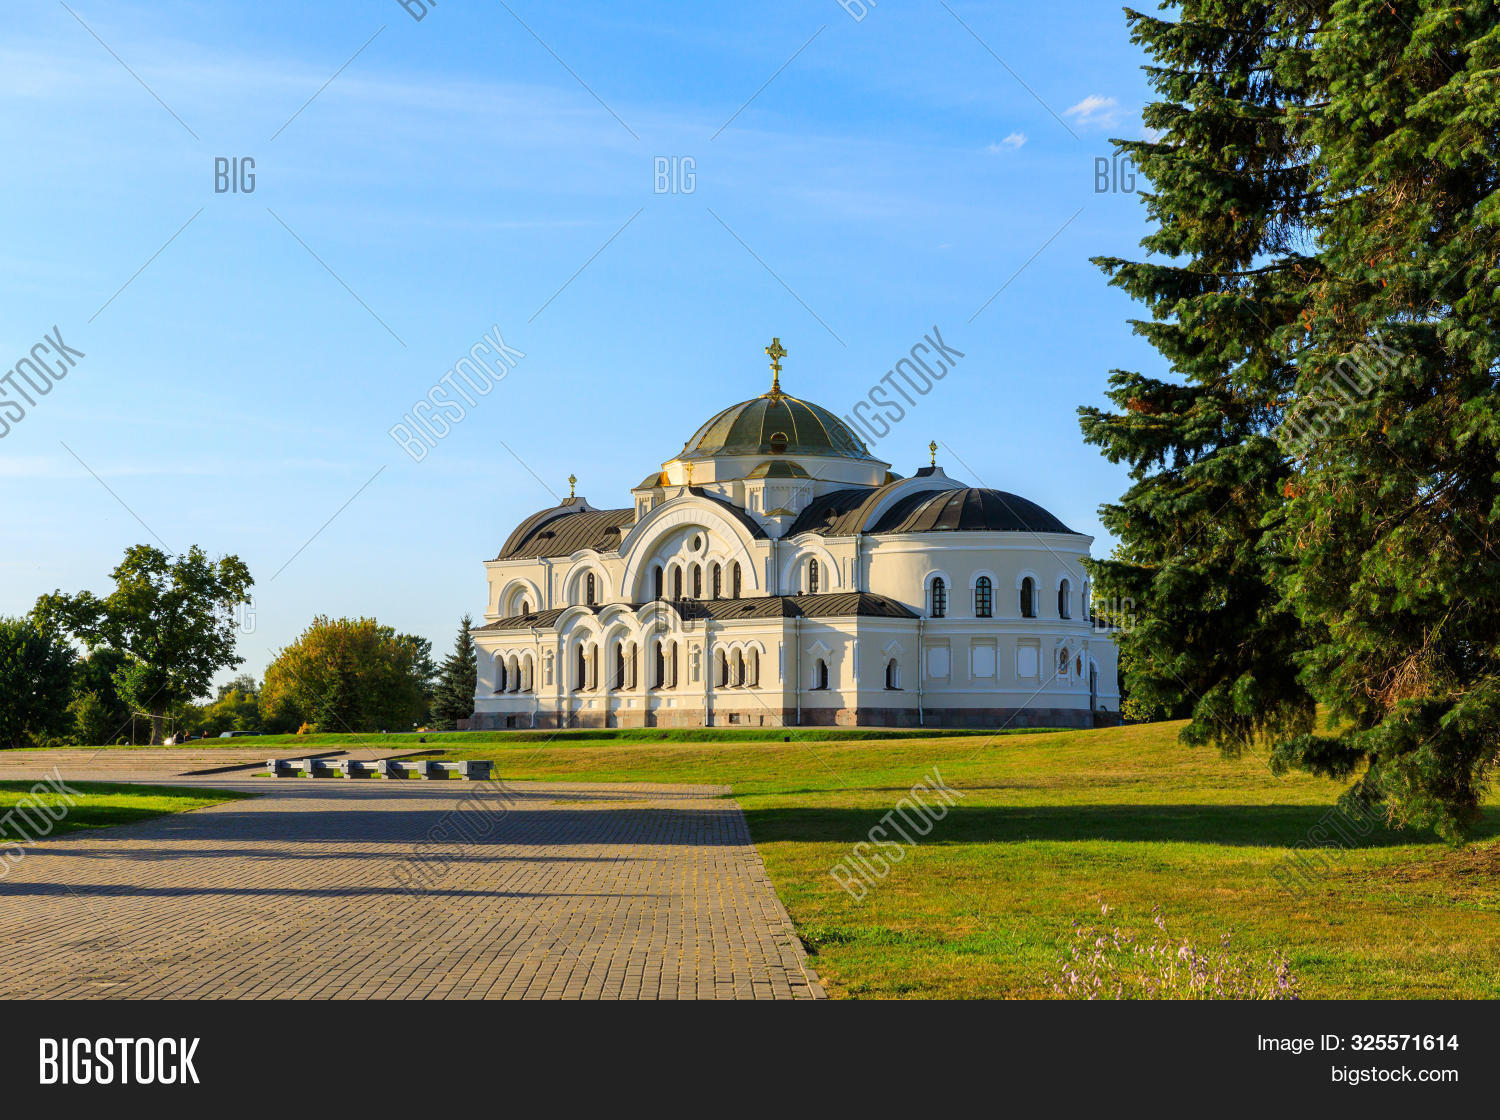 architecture,belarus,brest,building,cathedral,christian,church,city,complex,confession,cross,culture,dome,eastern,europe,faith,fortress,garrison,god,gold,golden,historic,historical,history,holy,house,icon,landmark,memorial,memory,monument,nature,nicholas,ornament,orthodox,protection,religion,sky,st,star,summer,sunny,temple,tourism,traditional,travel,view,war,white